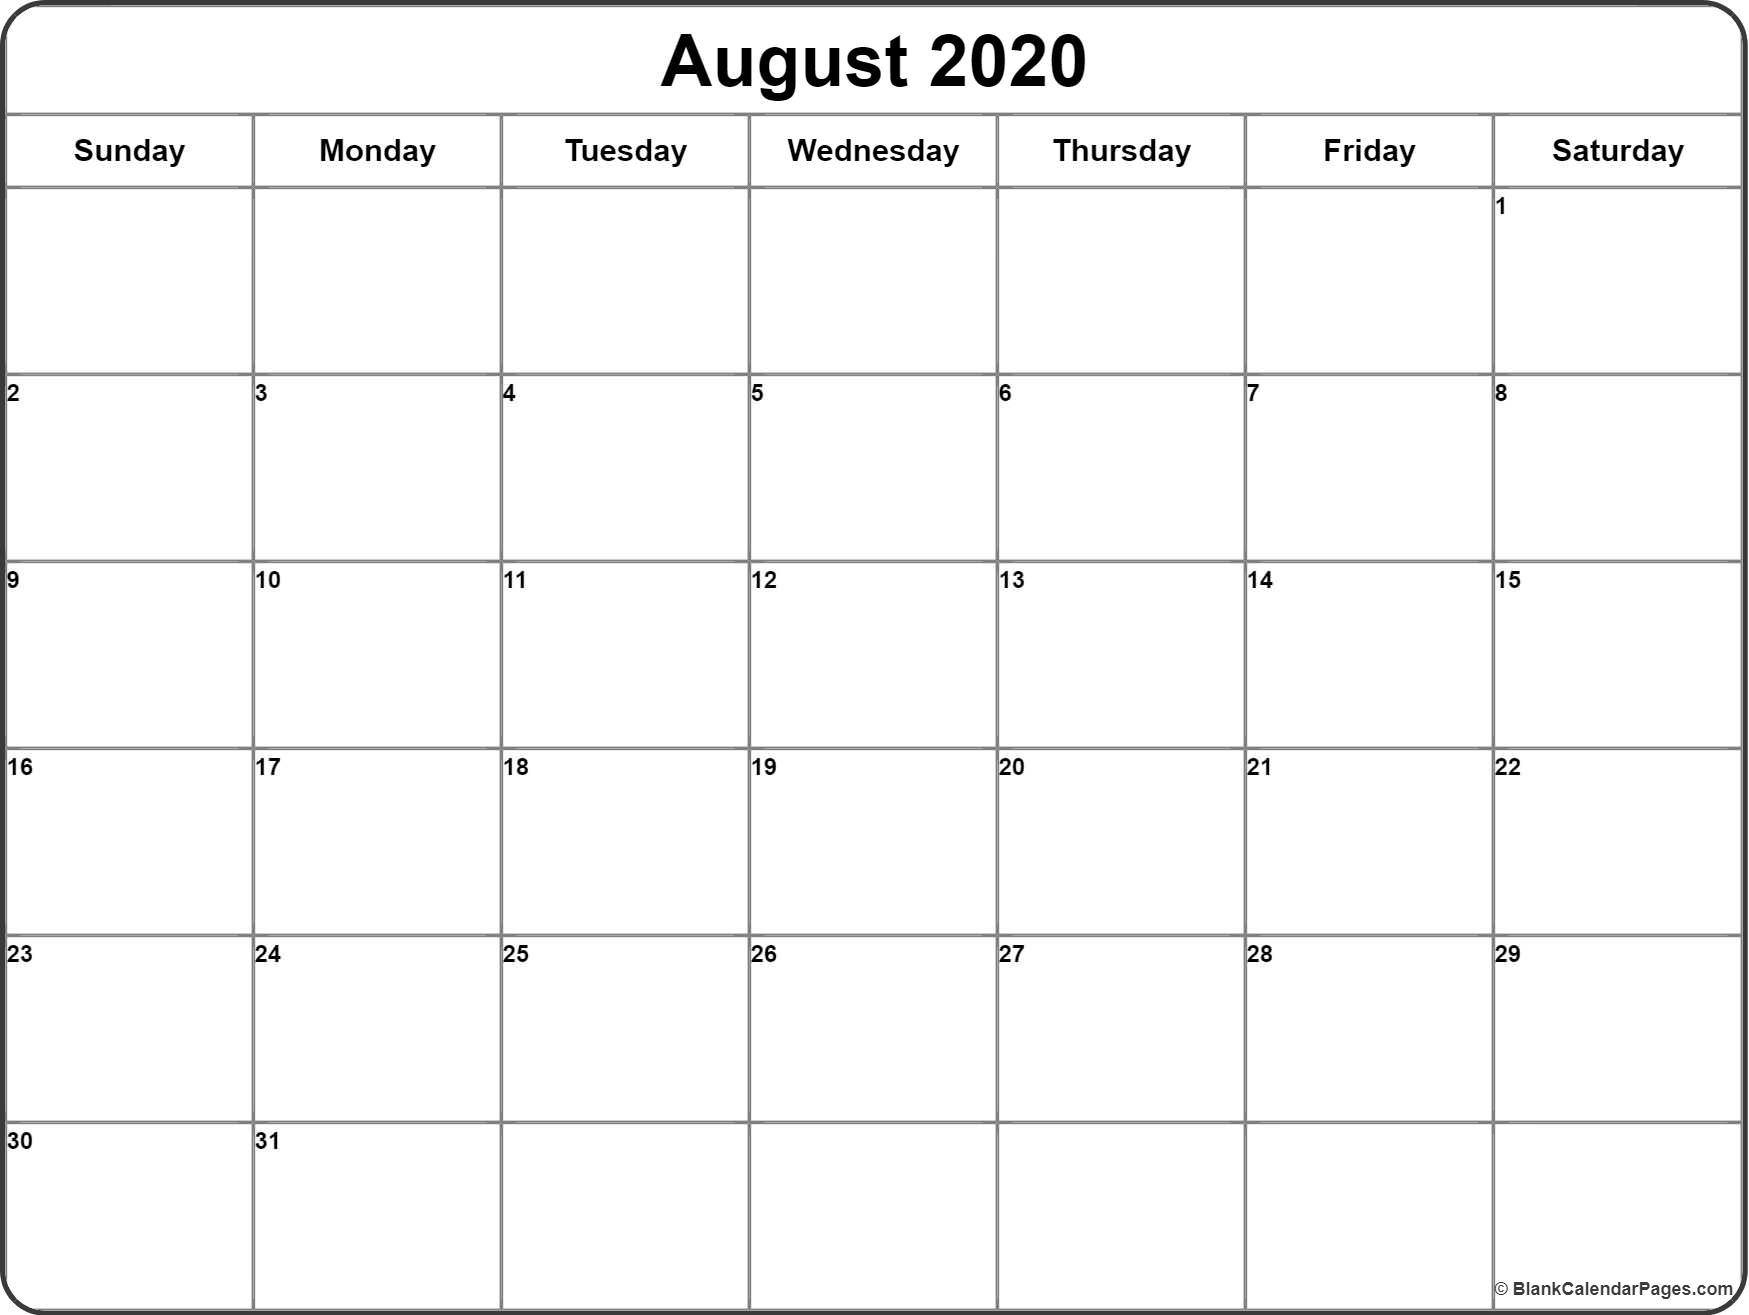 August 2020 Calendar | Free Printable Monthly Calendars  Small August 2020 Calendar